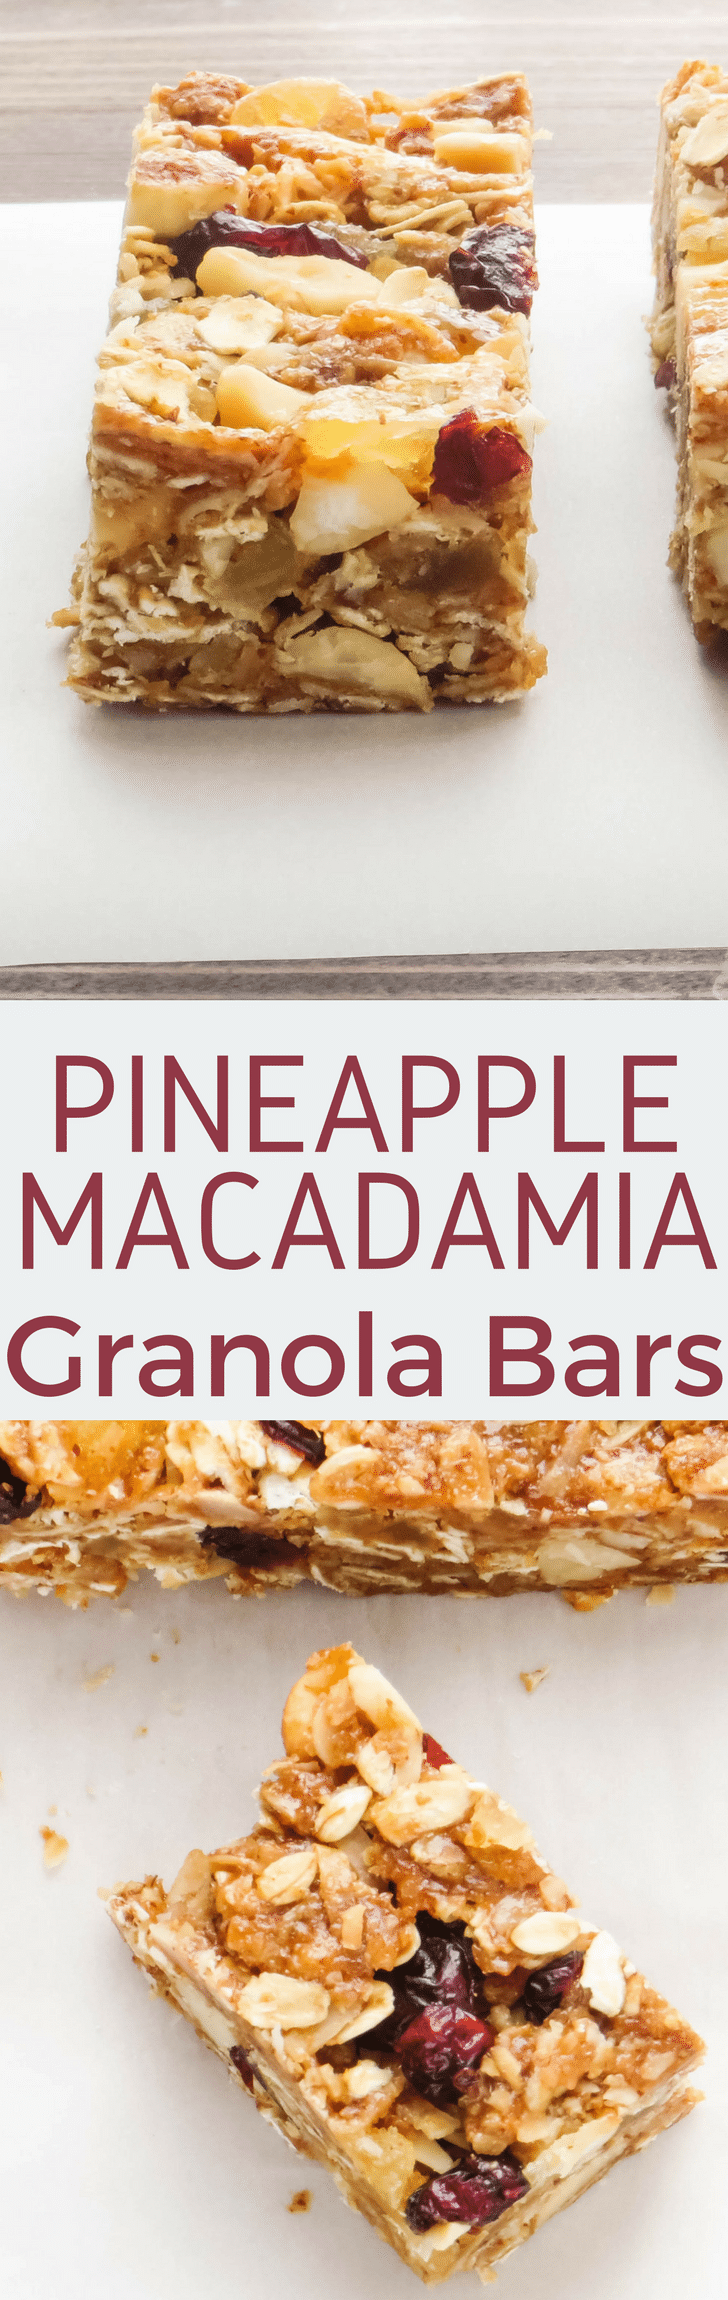 Love granola bars? Pineapple Macadamia Granola Bars are a deliciously tropical treat! With whole oats, wheat germ and coconut, these wholesome granola bars are an easy-to-make, satisfying breakfast or snack option. #granola #granolabars #coconutgranolabars #macadamiagranola #cranberrygranola #pineapplegranola #brunch #breakfast #snacks #homemadegranola #easygranola #granolafromscratch #granolabarrecipe